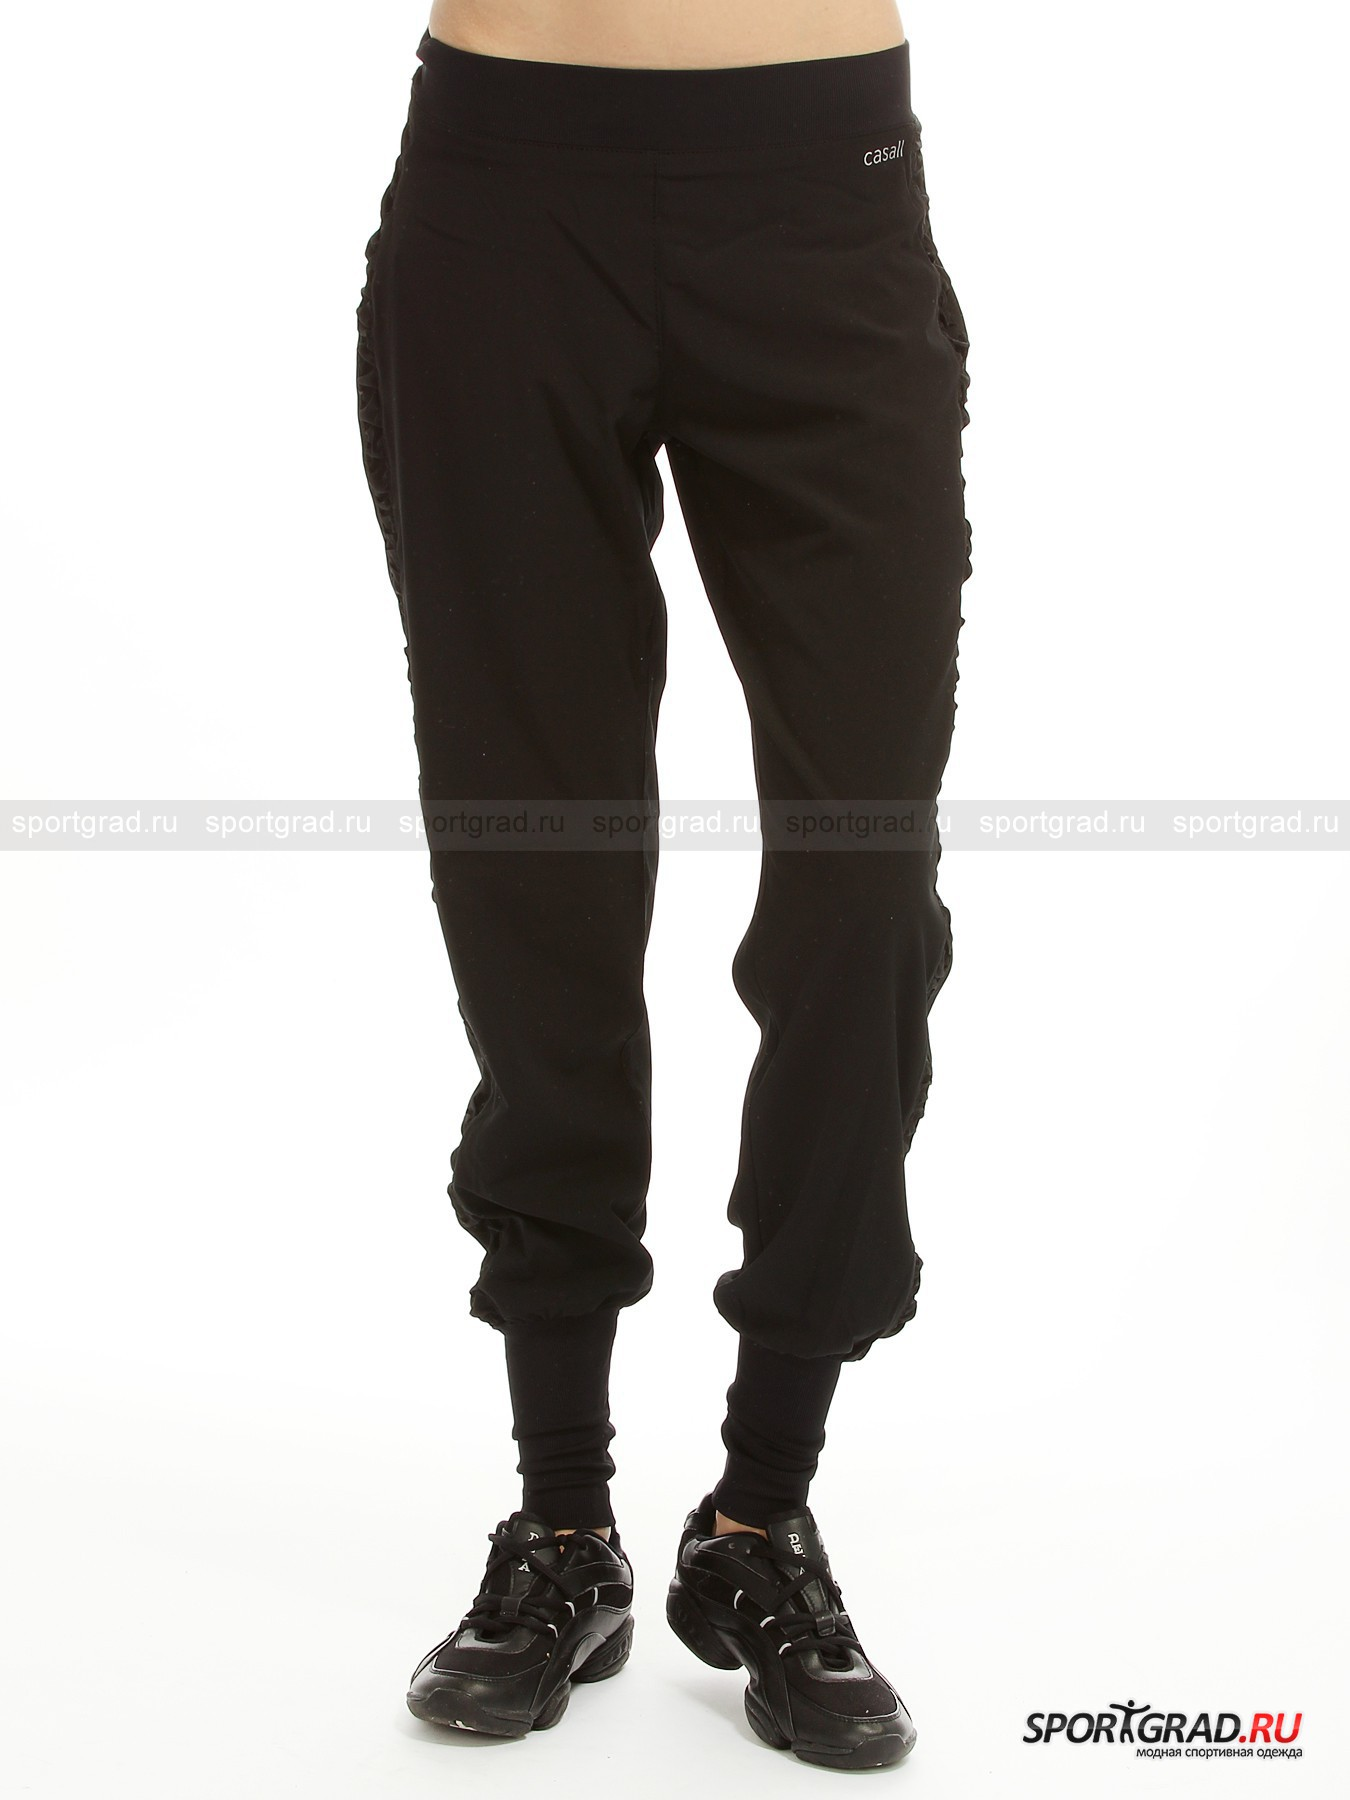 ����� ������� ��� ������ � ������� Move cuff pants CASALL